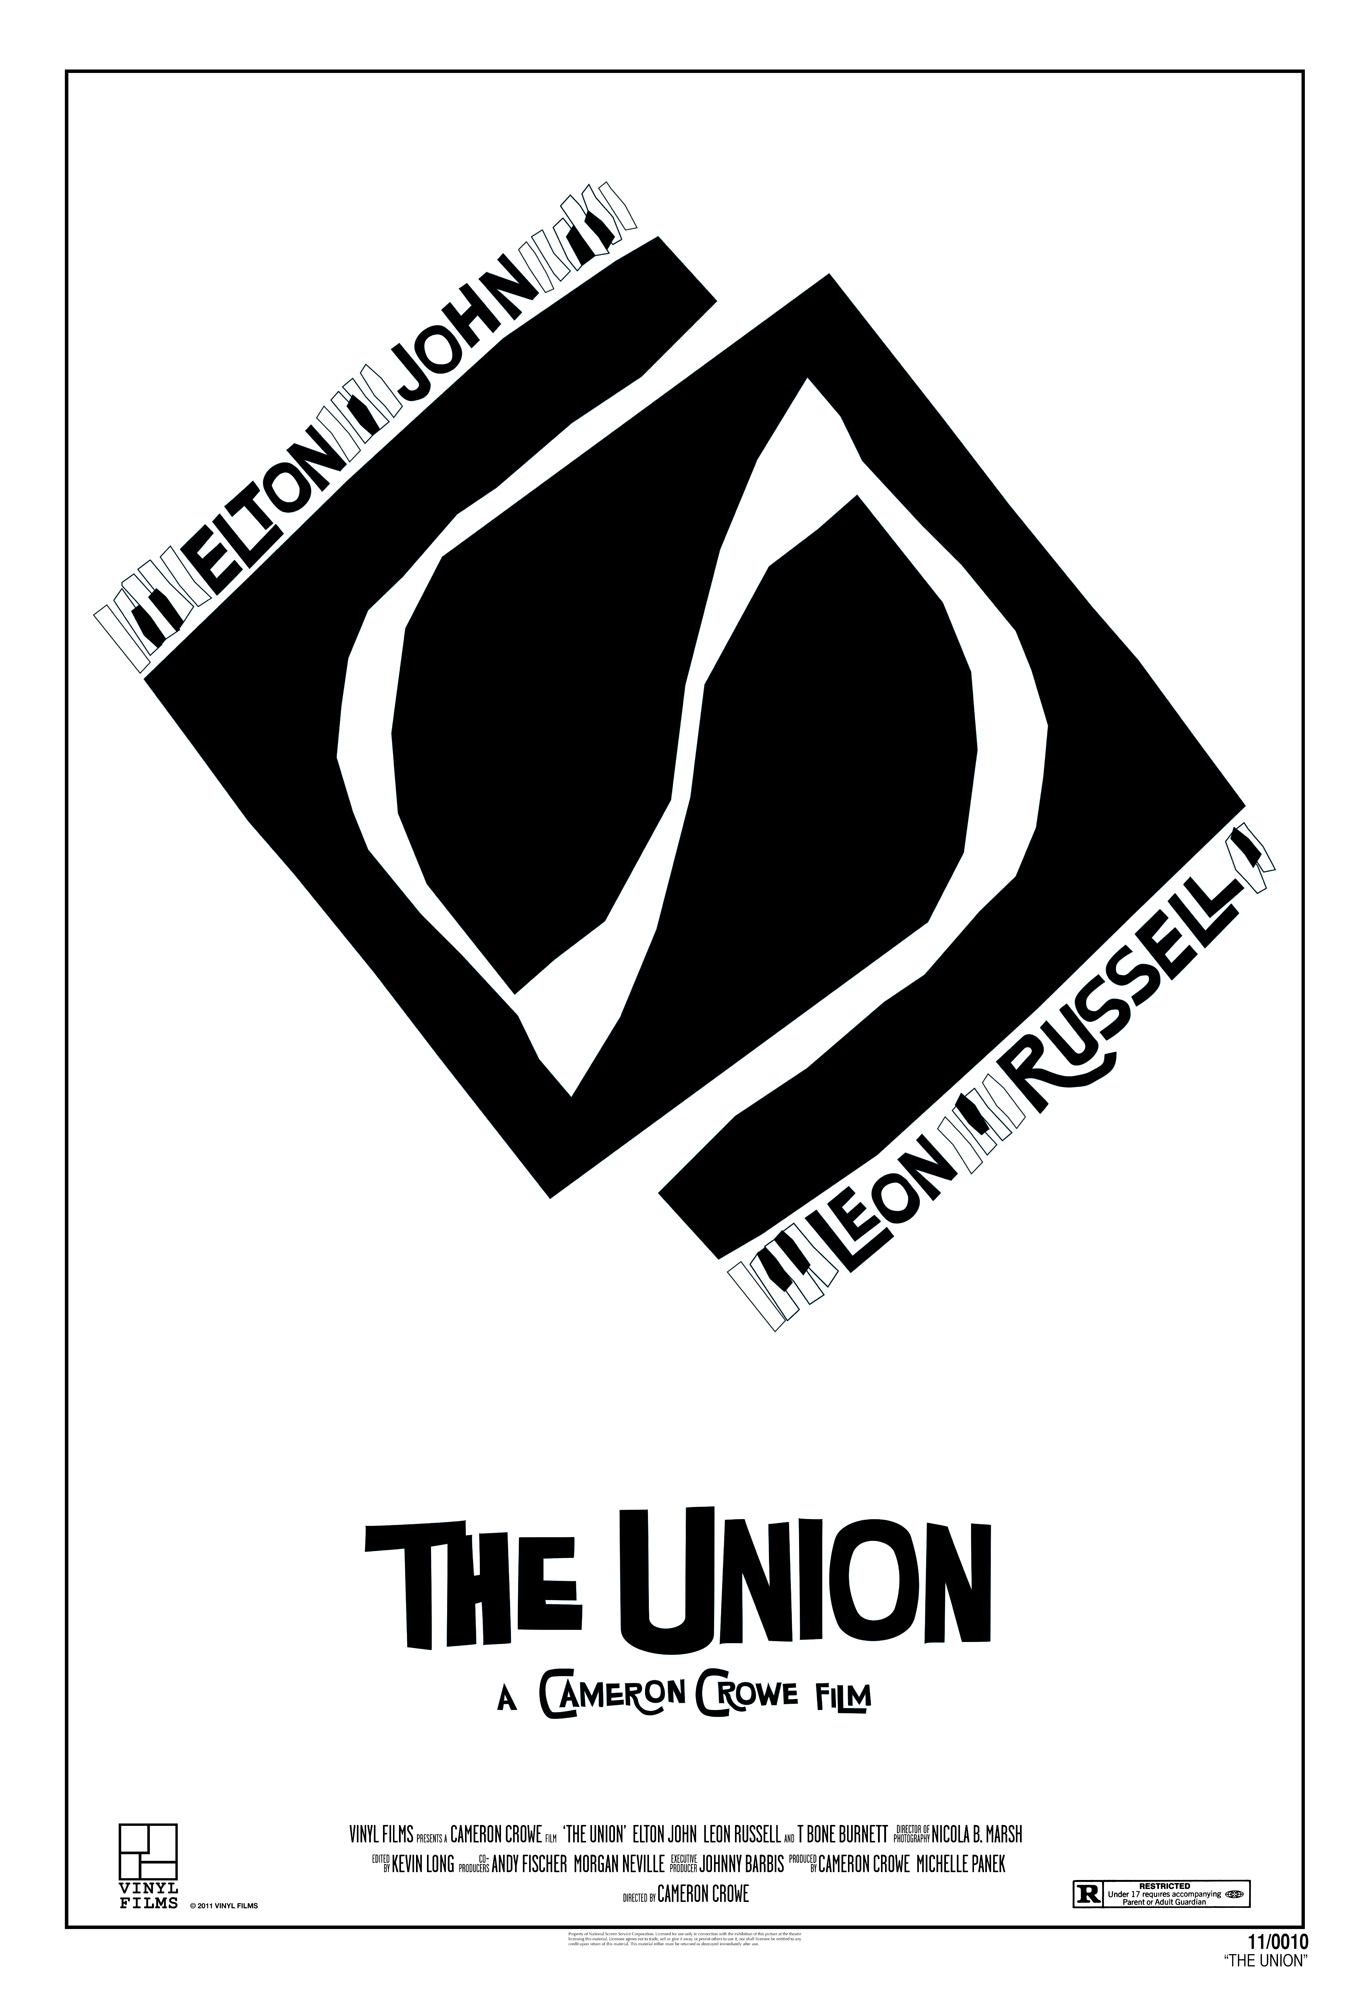 http://www.theuncool.com/wp-content/uploads/2011/04/theuniontheatricalposter.jpg